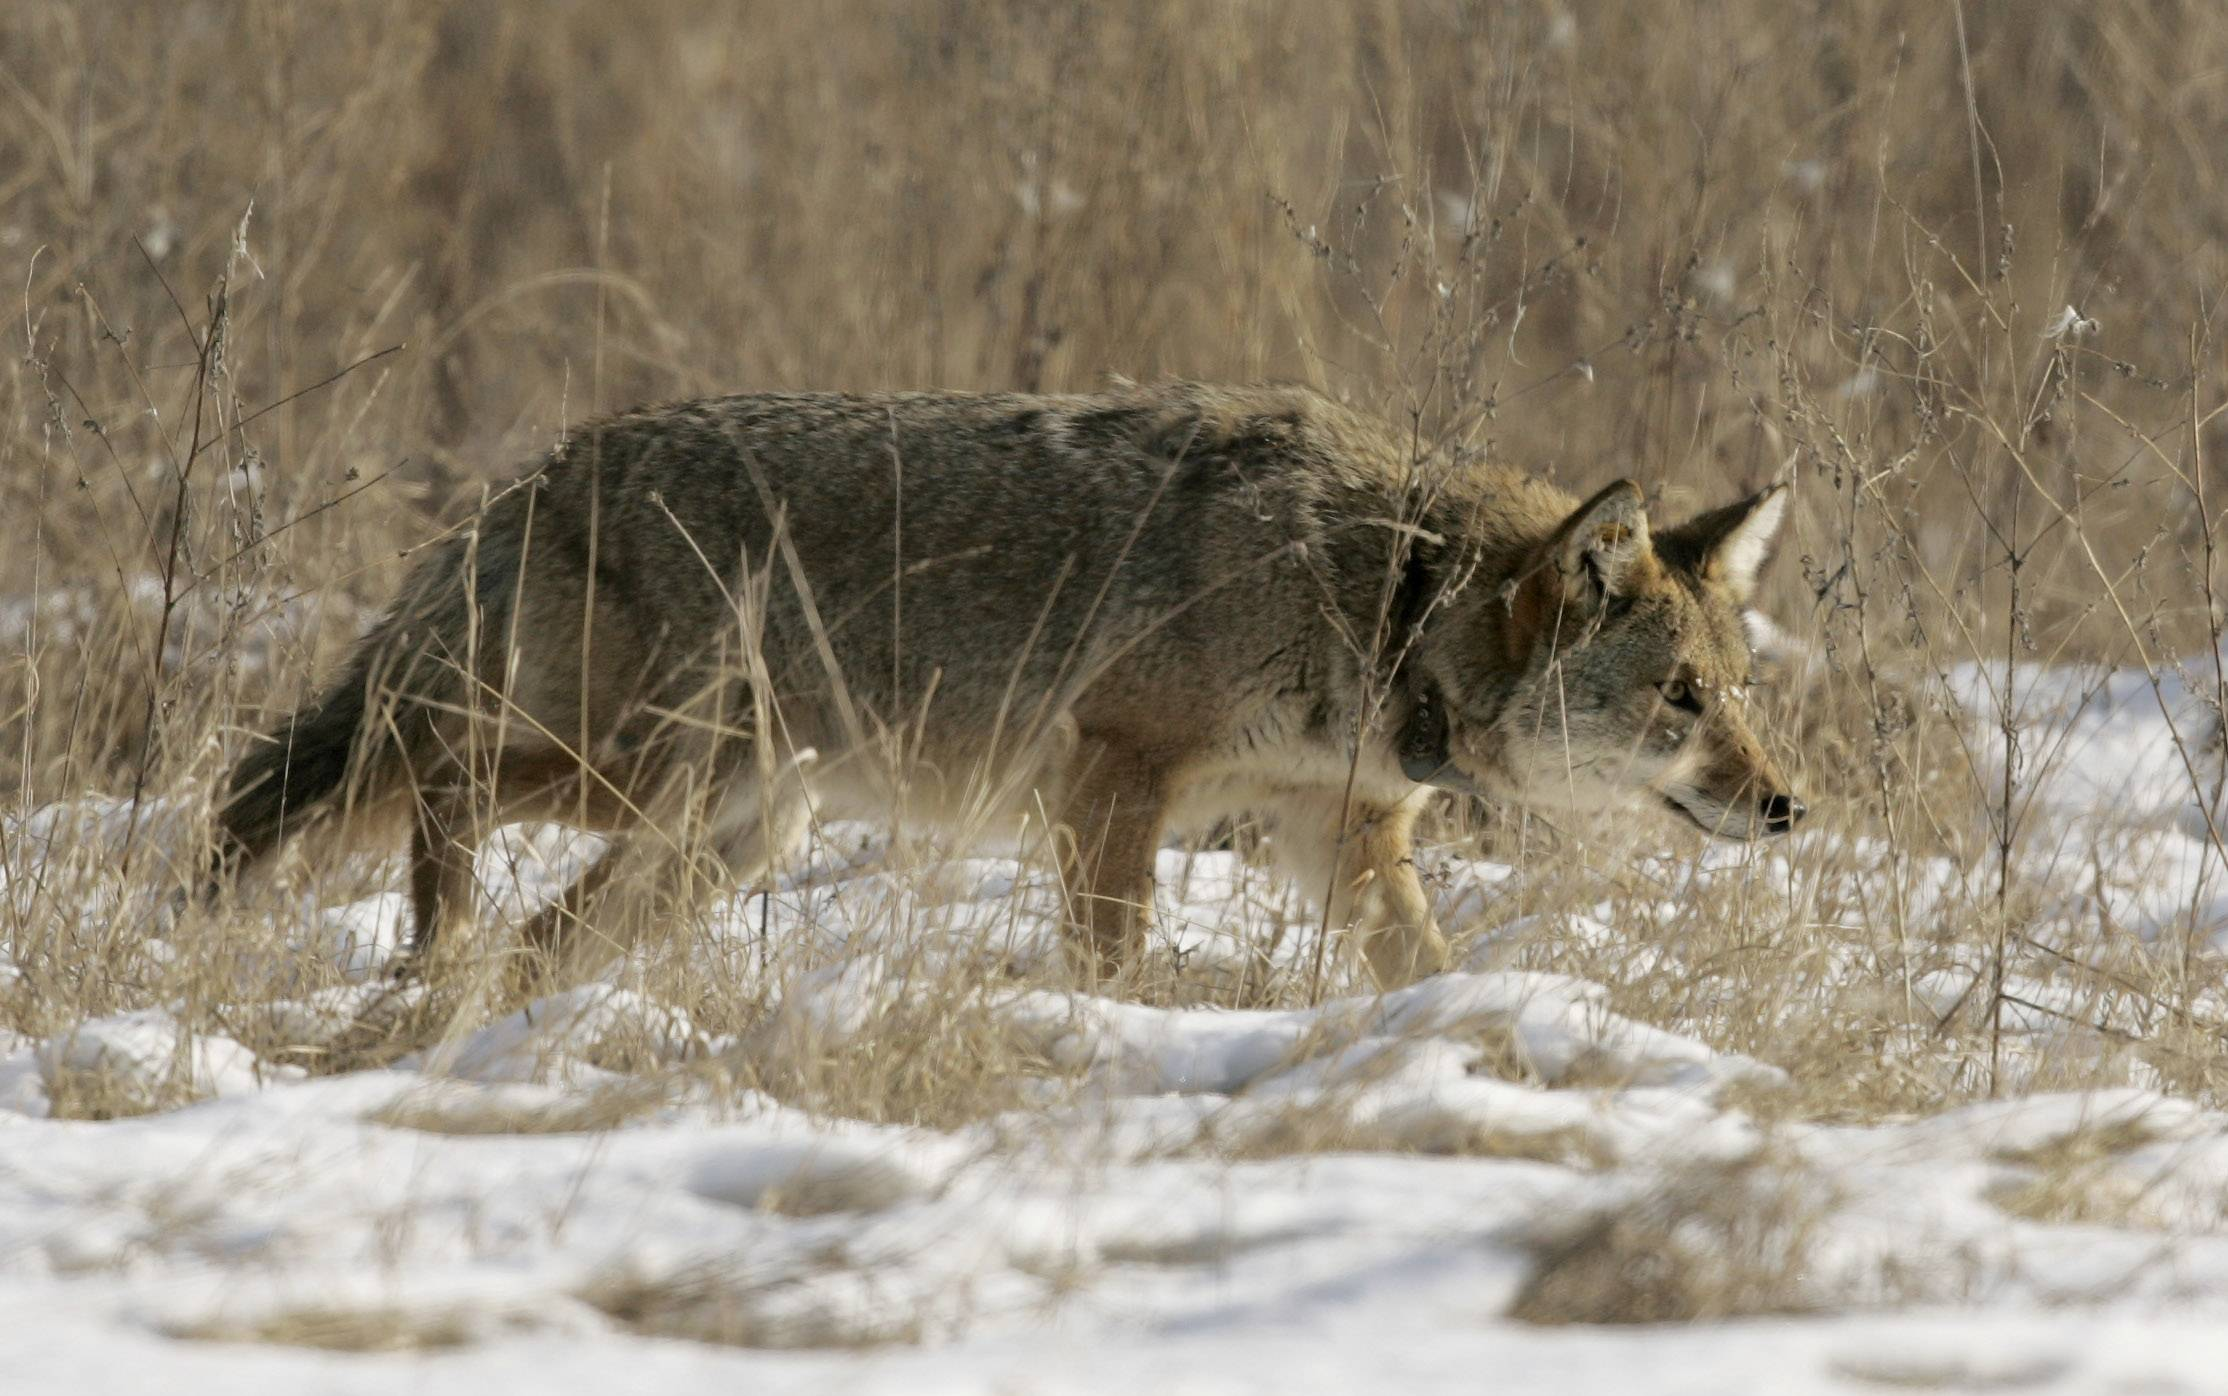 Coyote sighting are on the increase again, Lombard officials say, and residents are being urged to take some basic precautions.